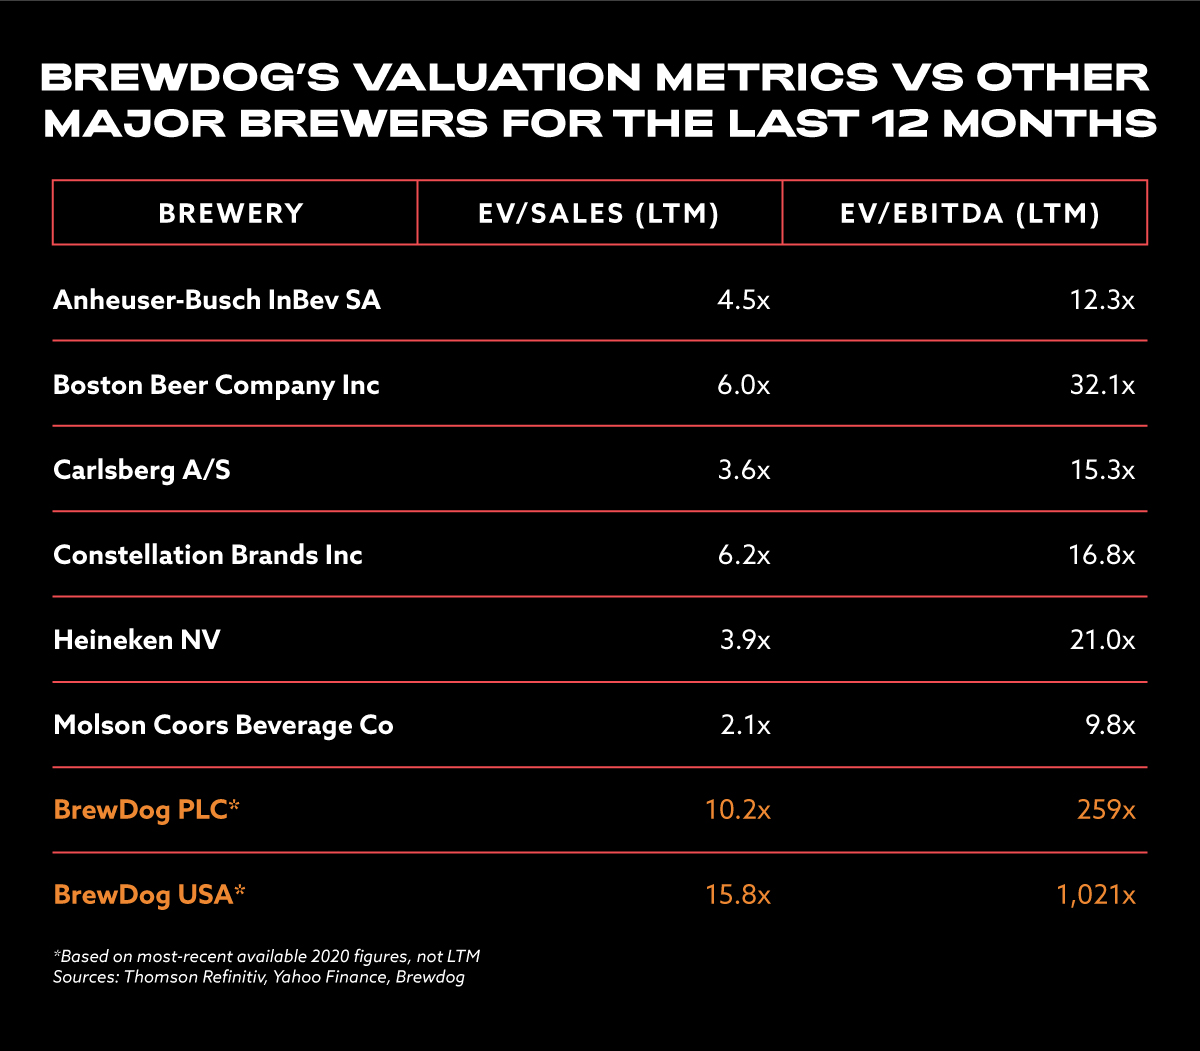 BrewDog's valuation compared to other major brewers for the last 12 months.